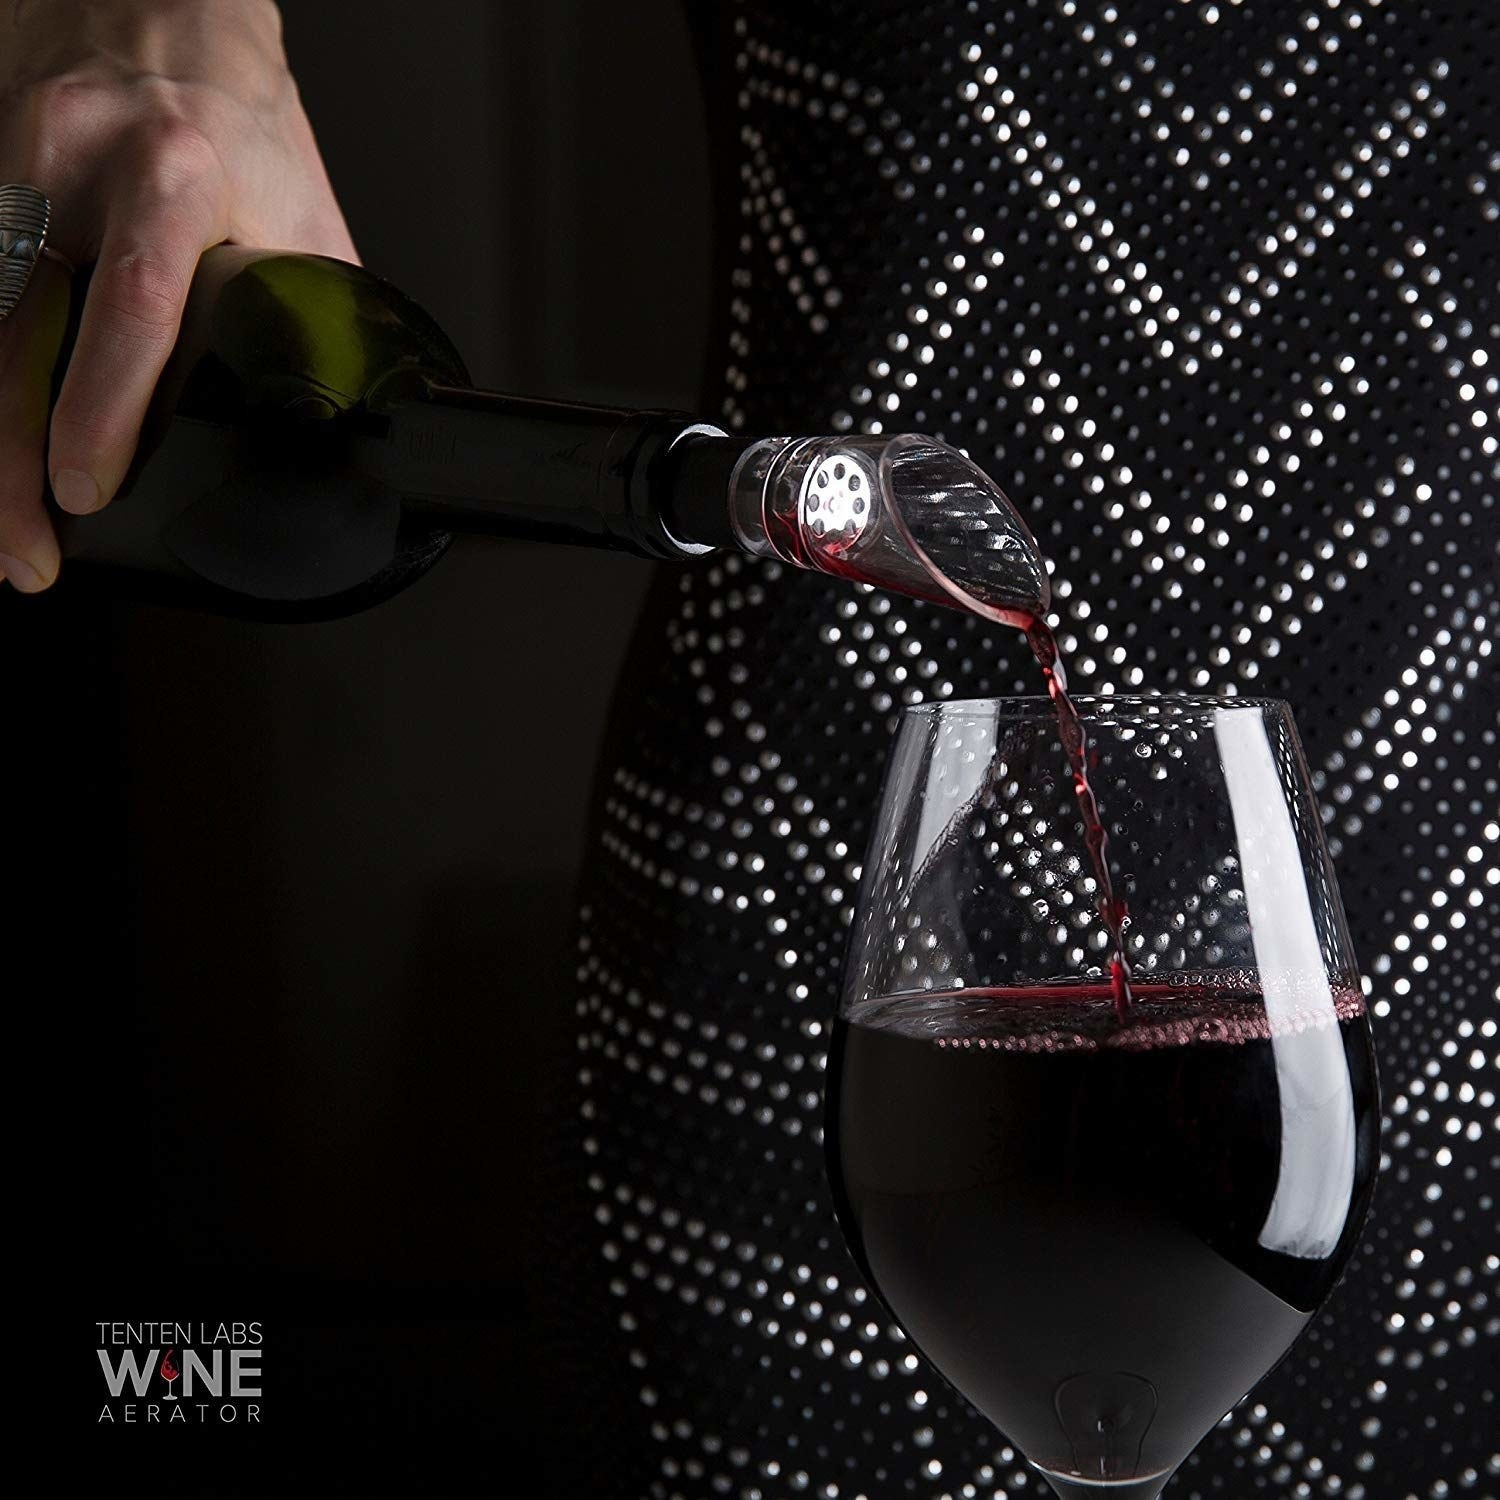 A model pouring a glass of wine using the attachable aerator